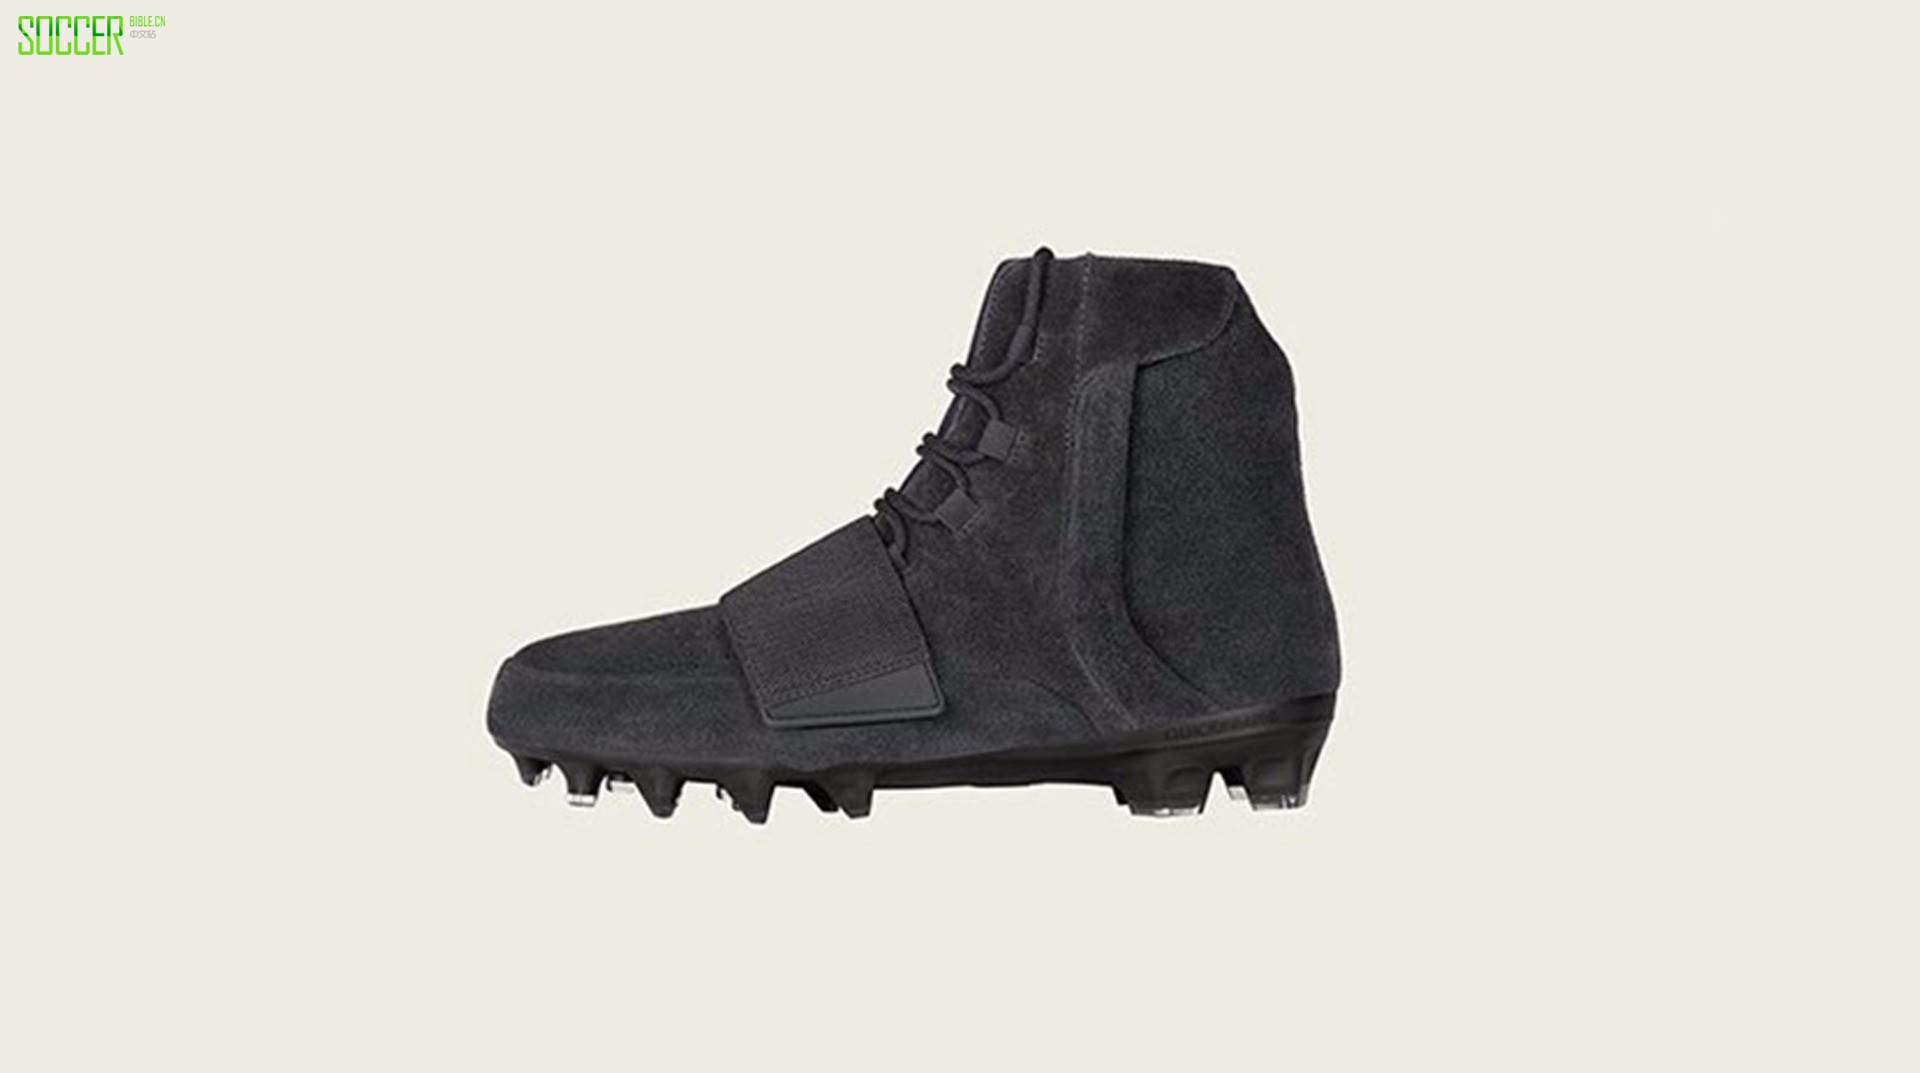 adidas To Release Yeezy 750 Cleats In Black : Football Boots : Soccer Bible